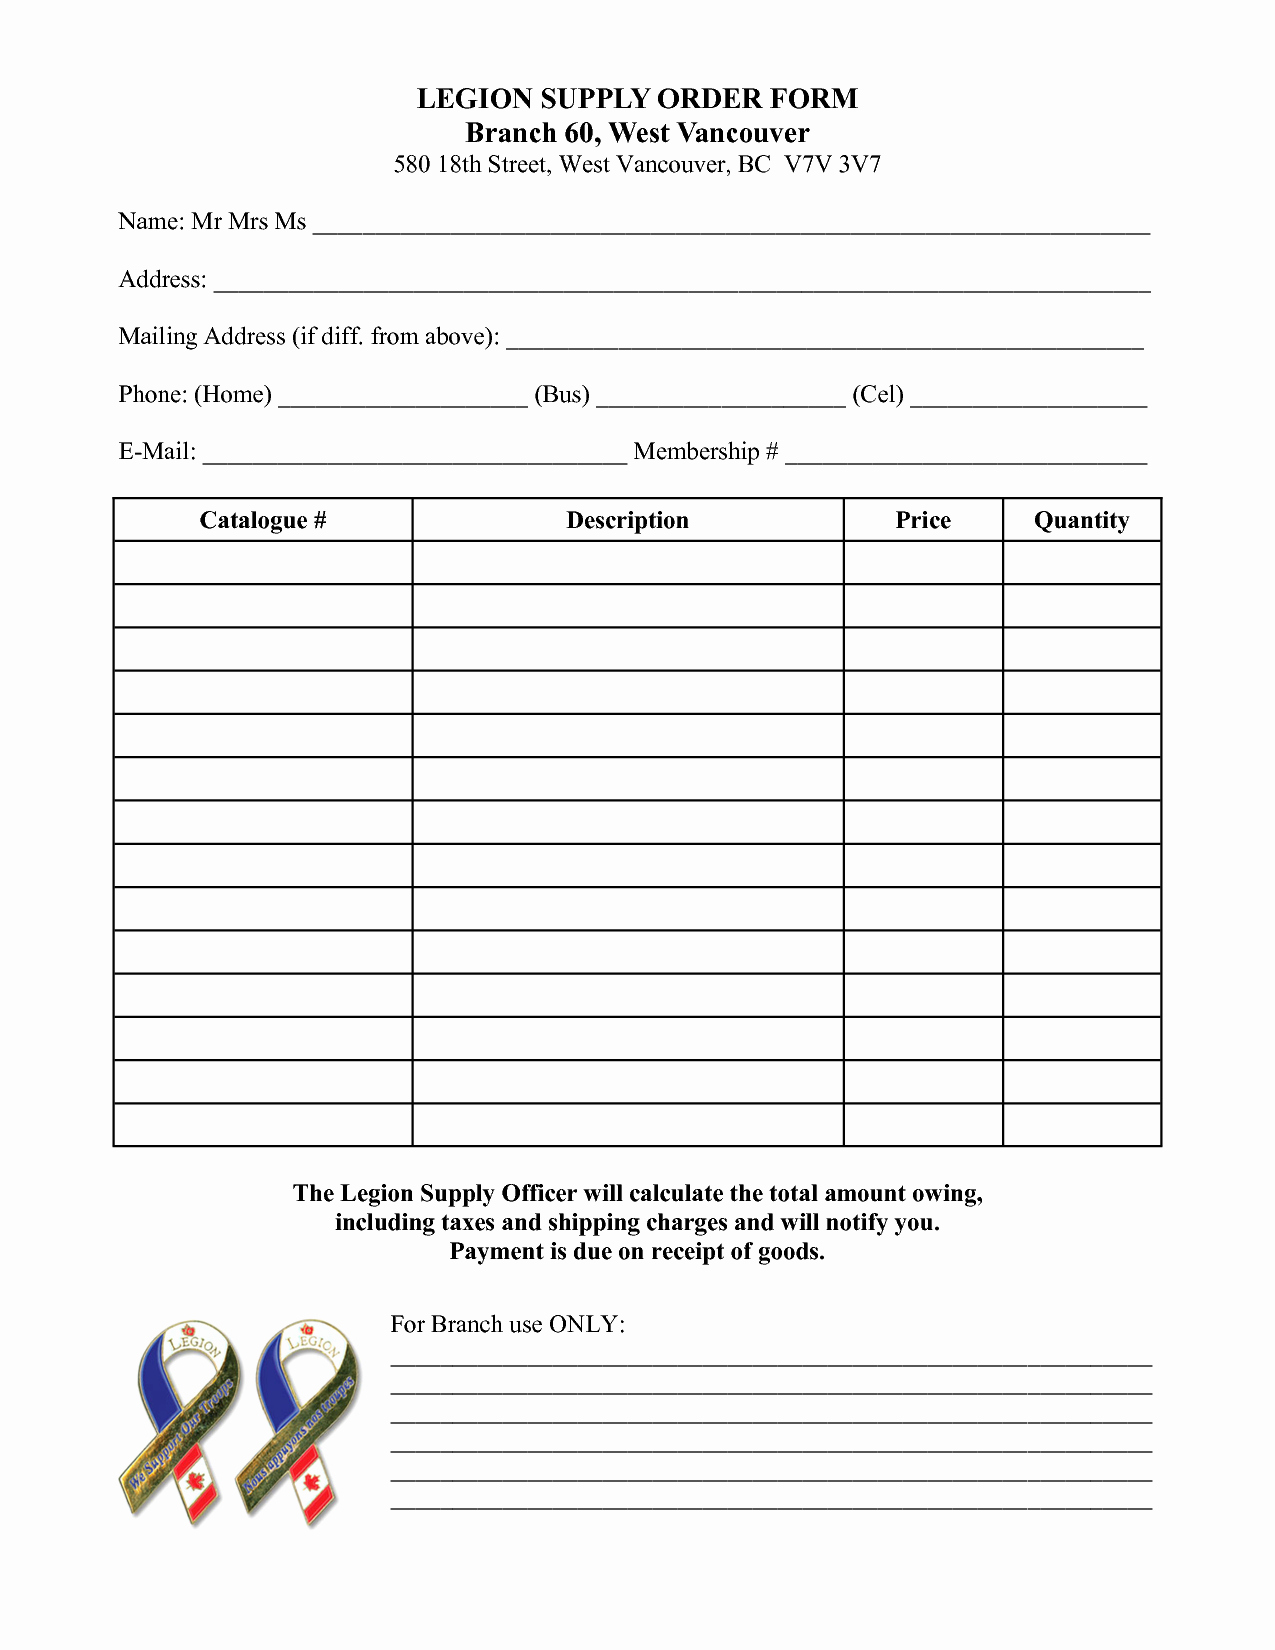 Supply order form Template Luxury Best S Of Fice Supply order form Template Fice Supply order form Fice Supply order